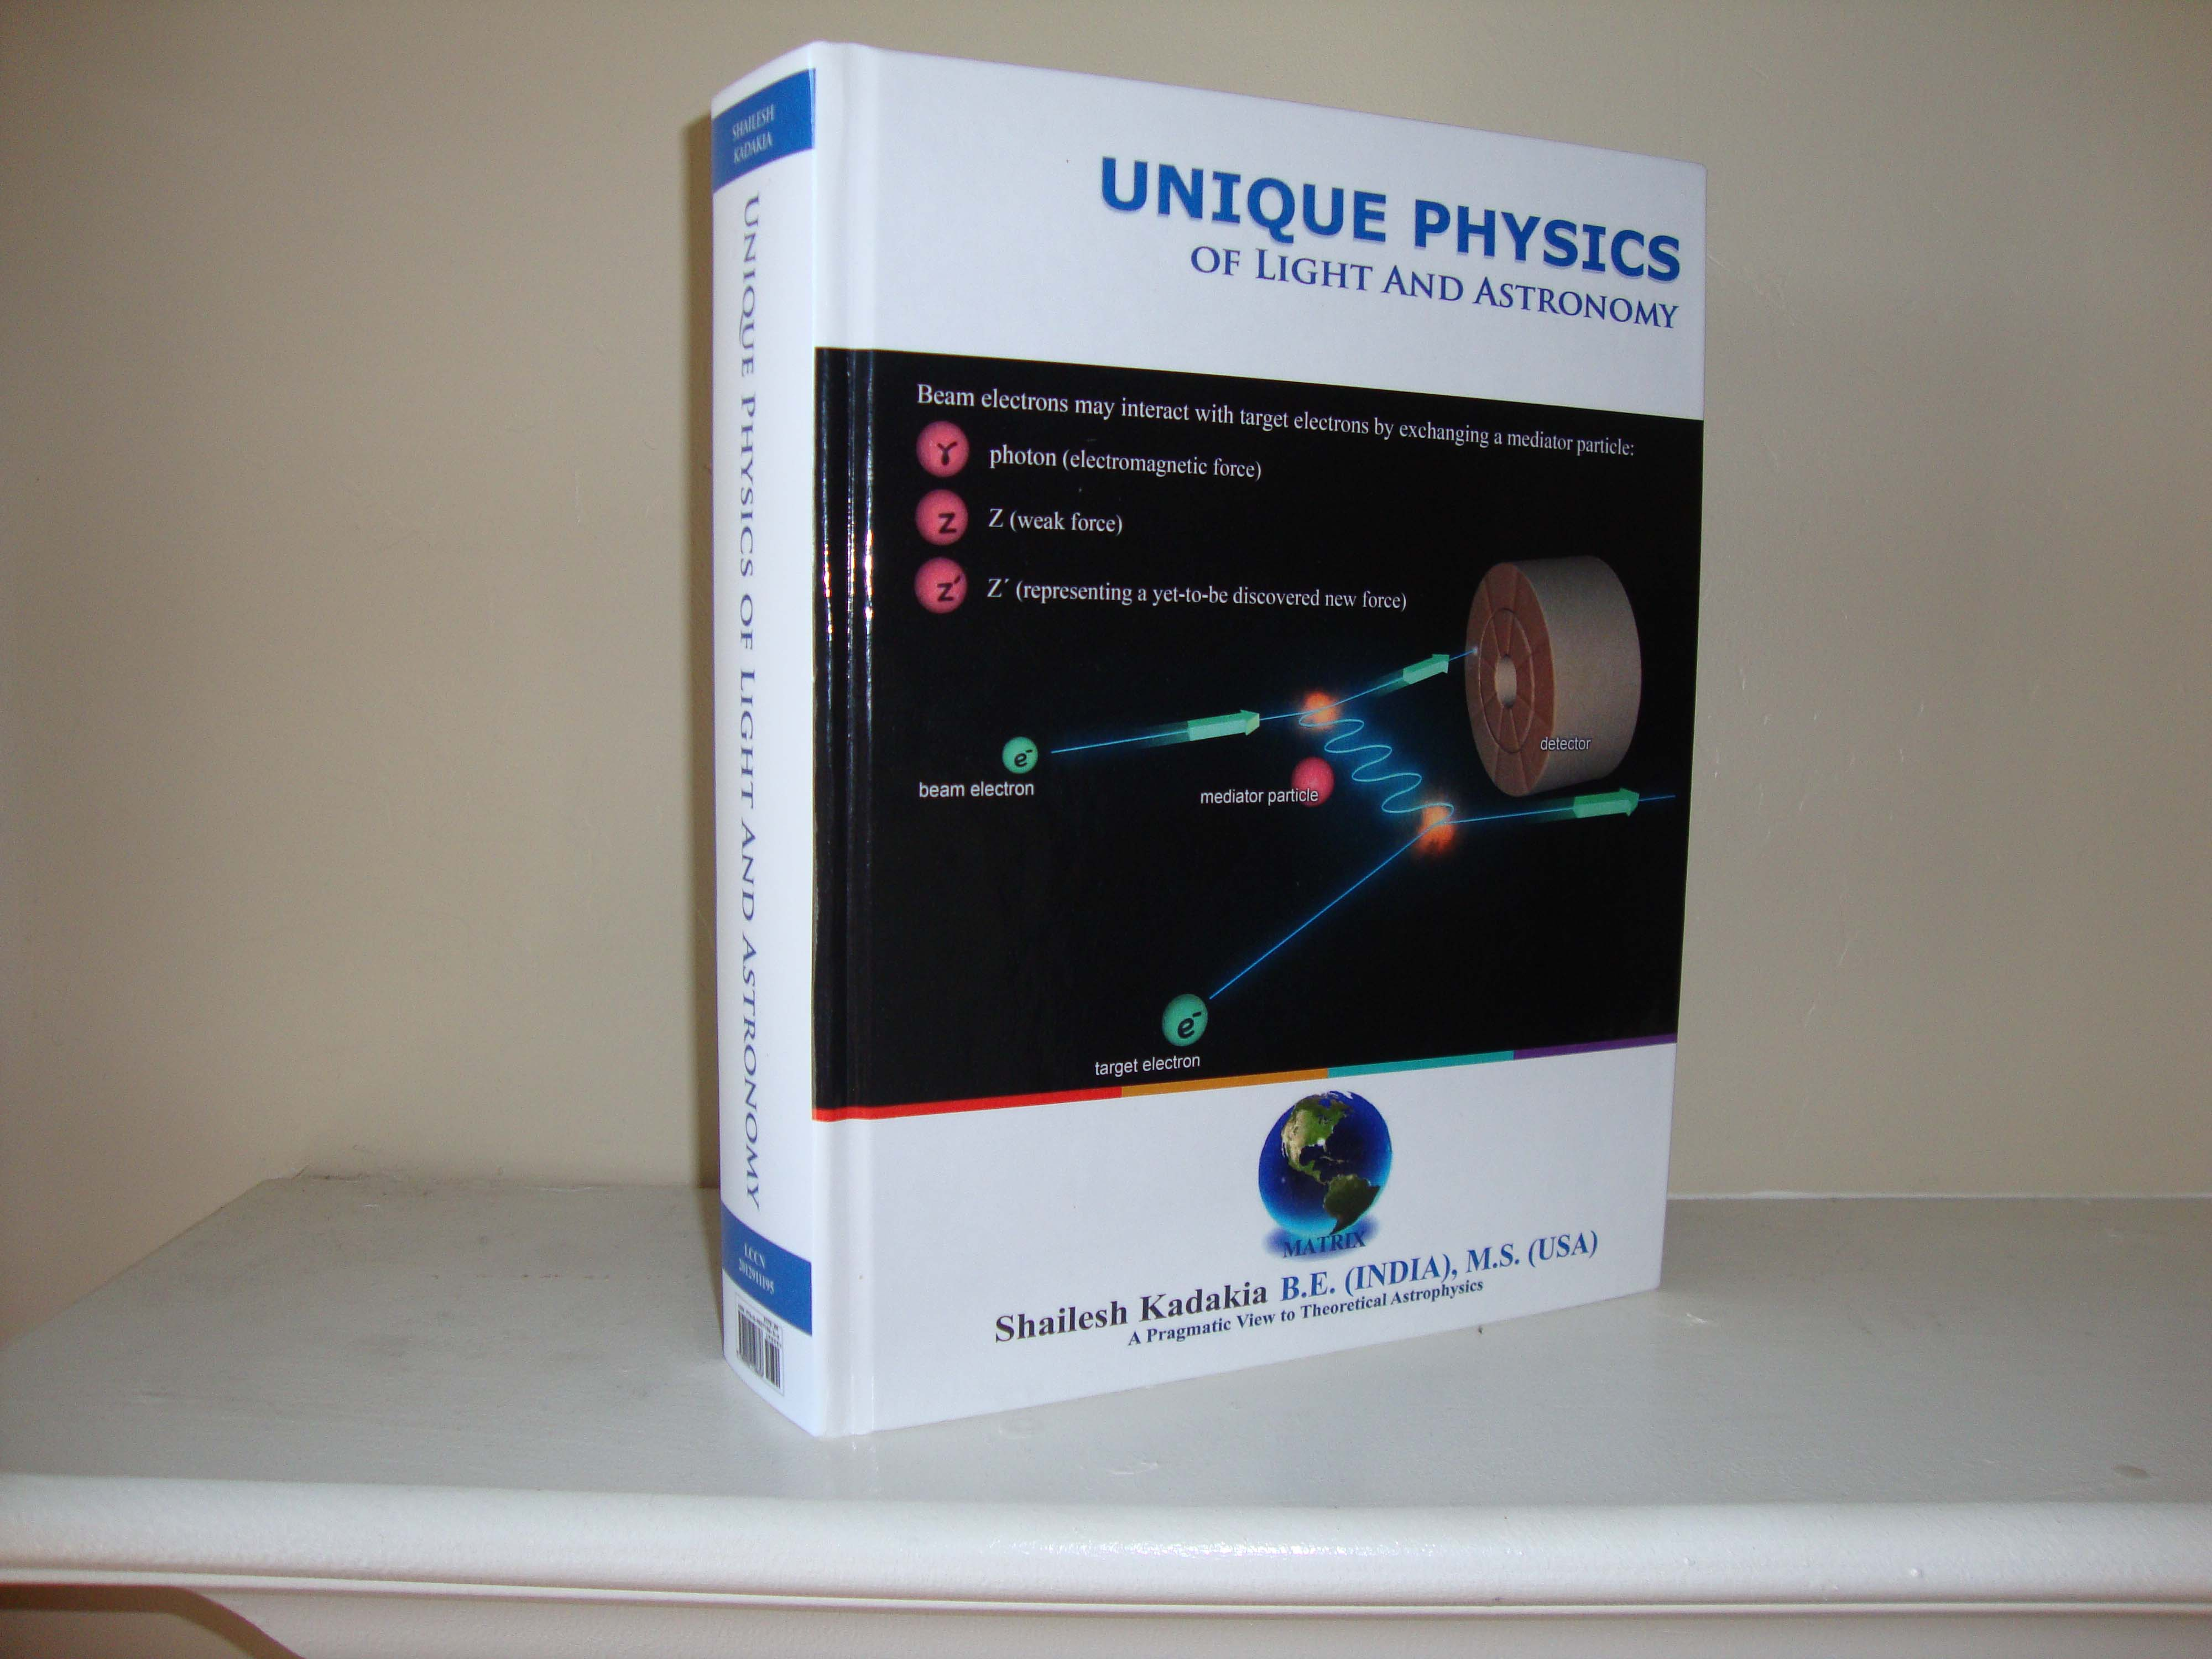 Unique Physics of Light and Astronomy, Book on a Flash drive